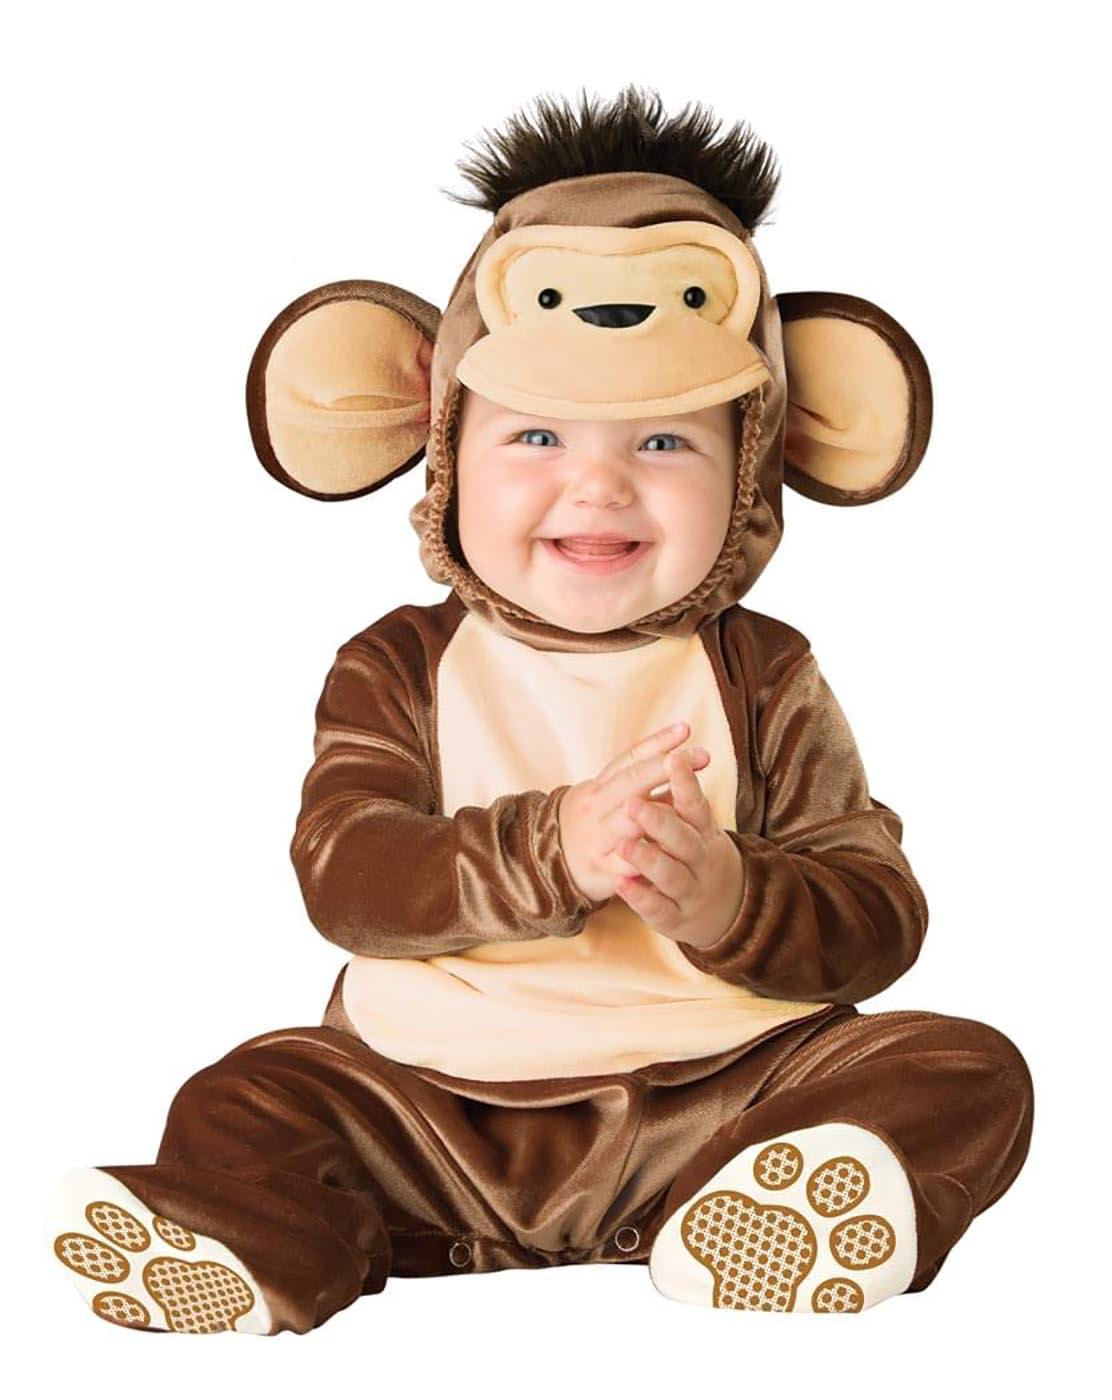 Mischievous Monkey Designer Baby Costume Medium 12-18 Months